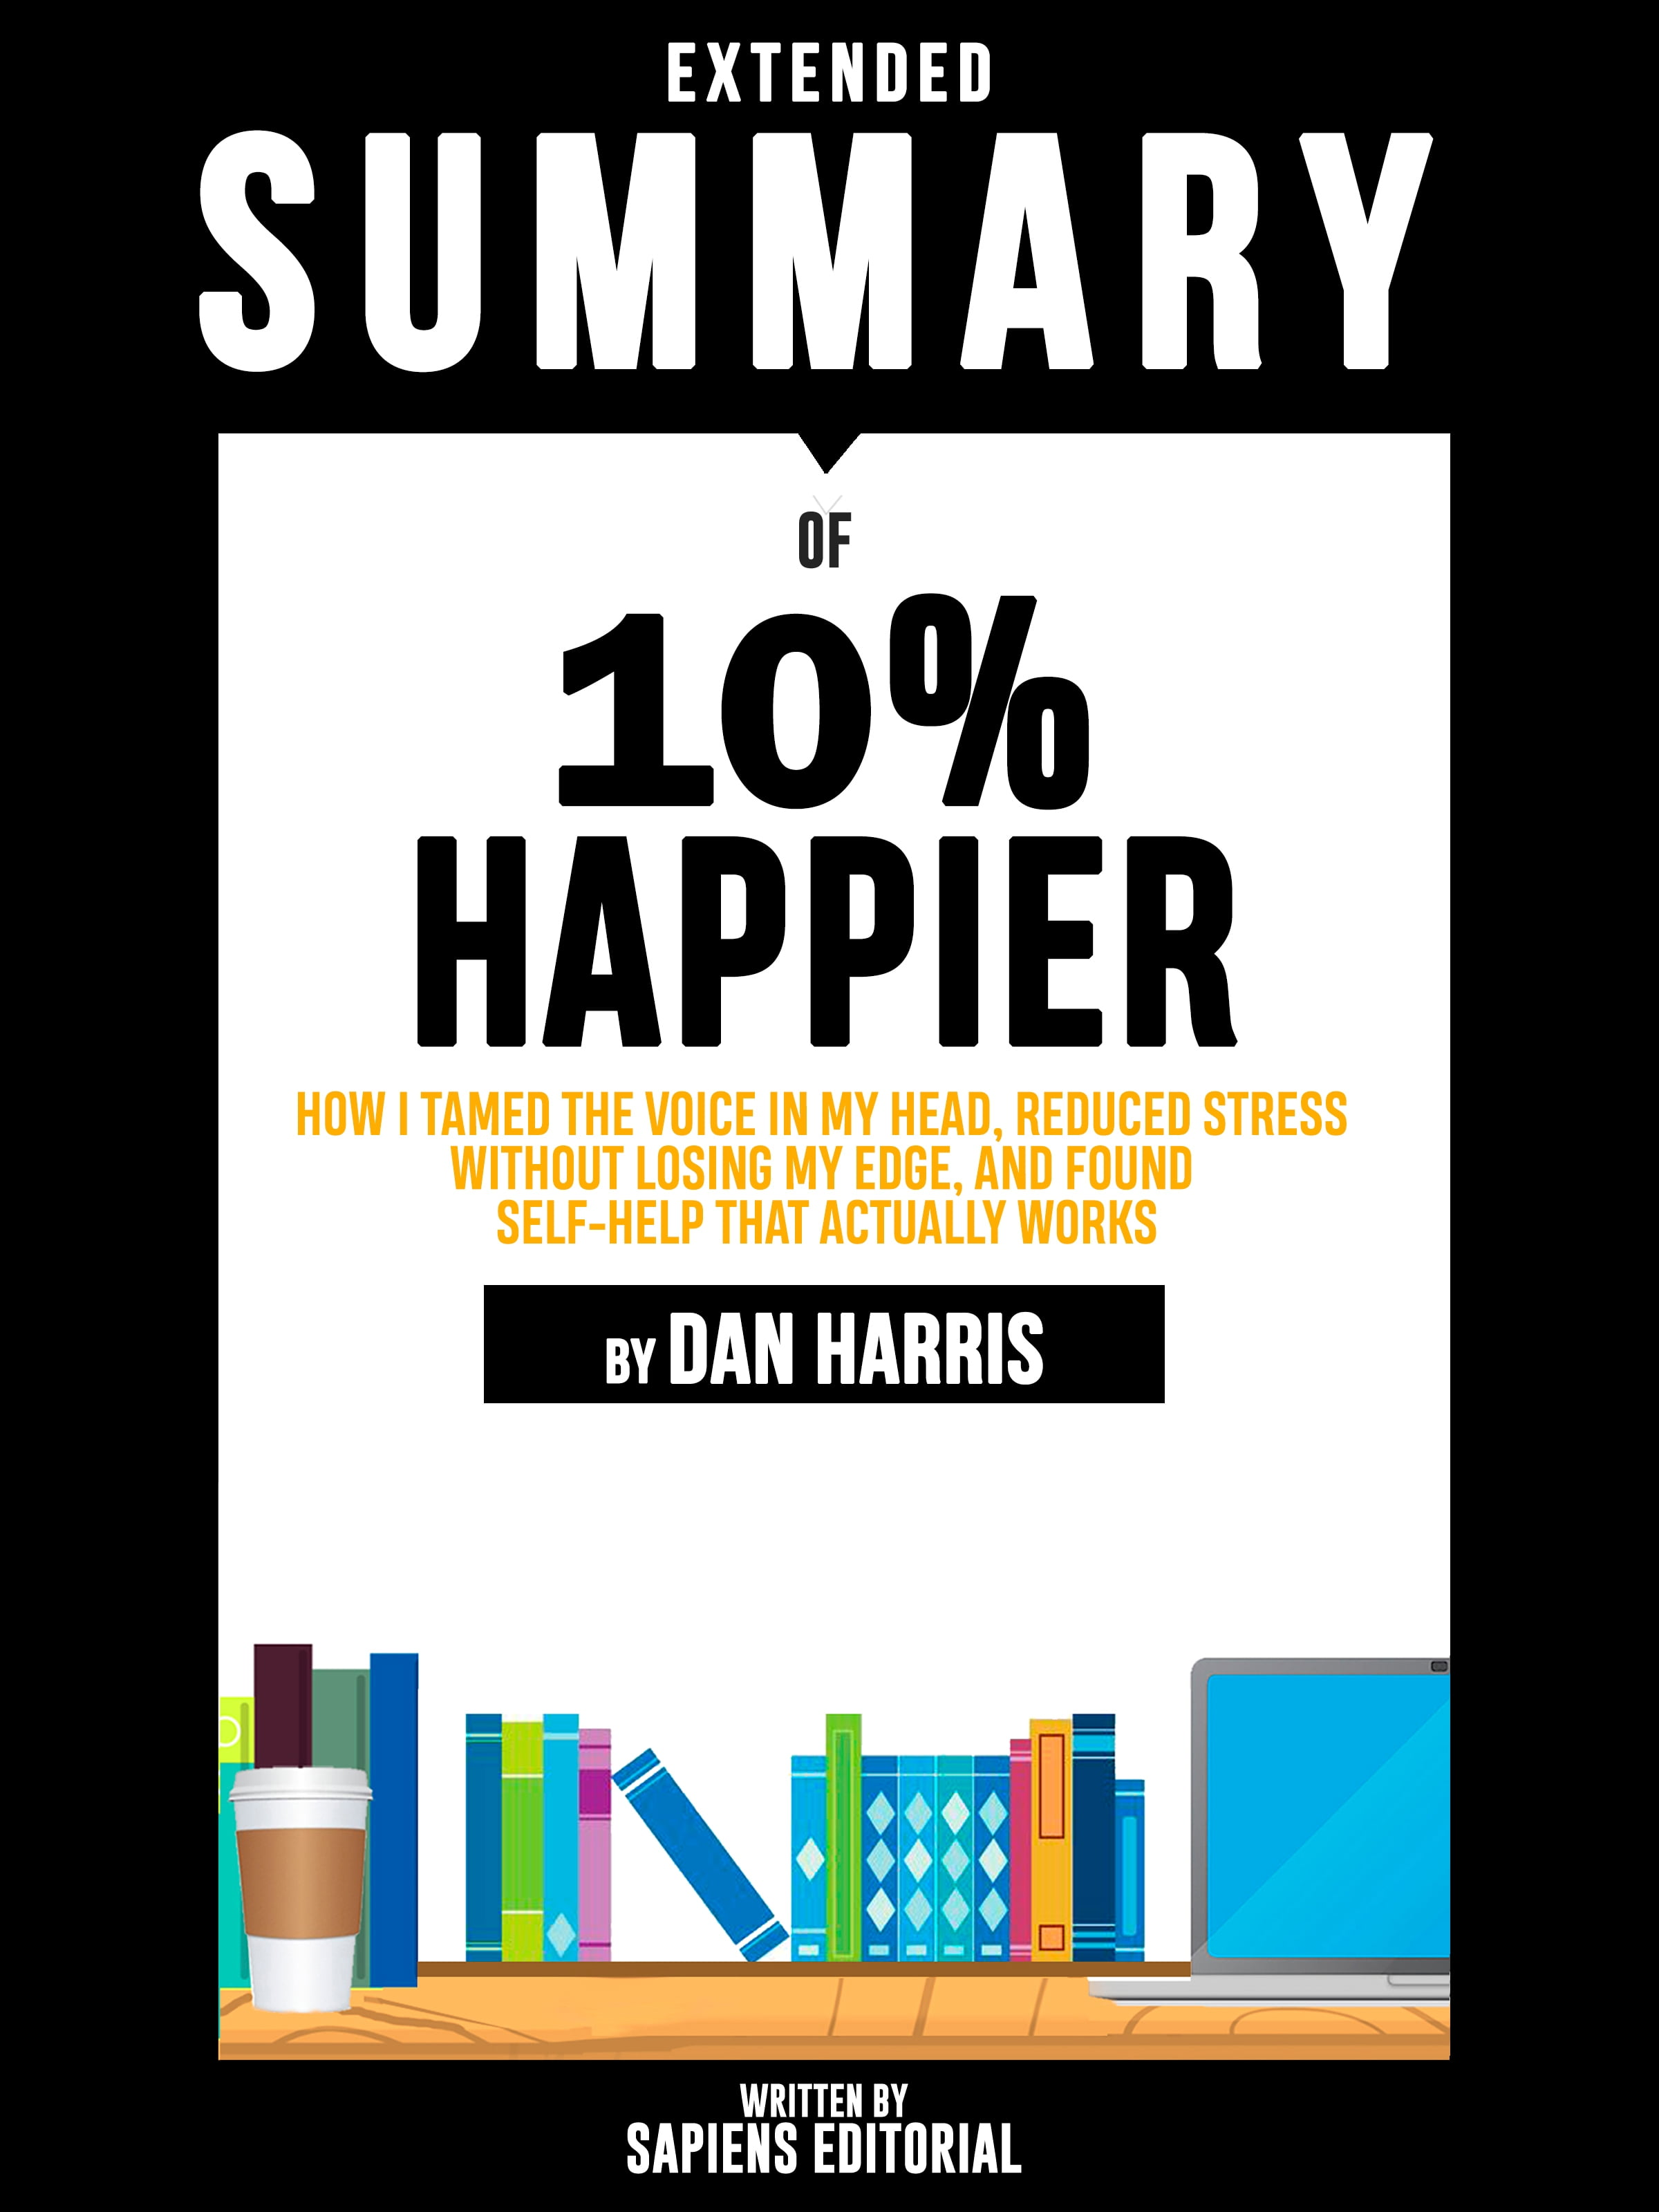 Extended Summary Of 10% Happier: How I Tamed The Voice In My Head, Reduced Stress Without Losing My Edge, And Found Self-Help That Actually Works - By Dan Harris (978-3966614085) Online Lesen